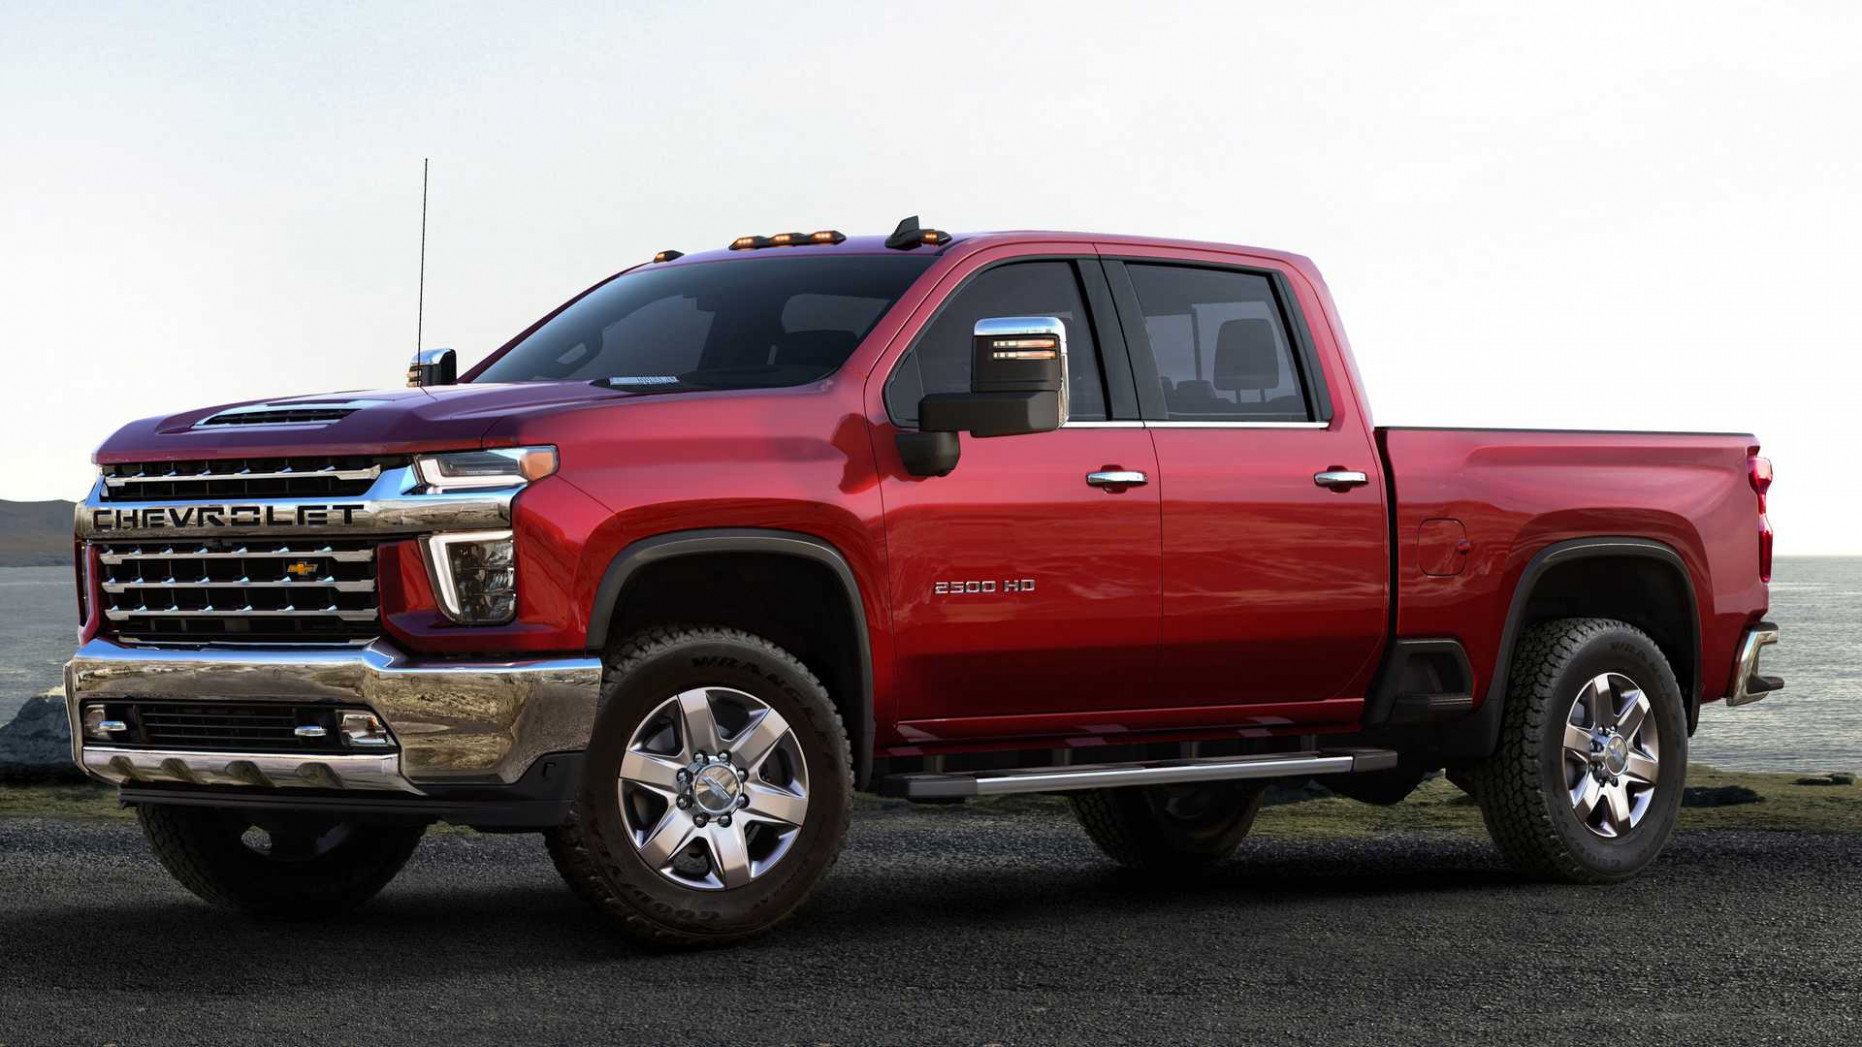 The Most Expensive 8 Chevy Silverado HD Costs $8,8